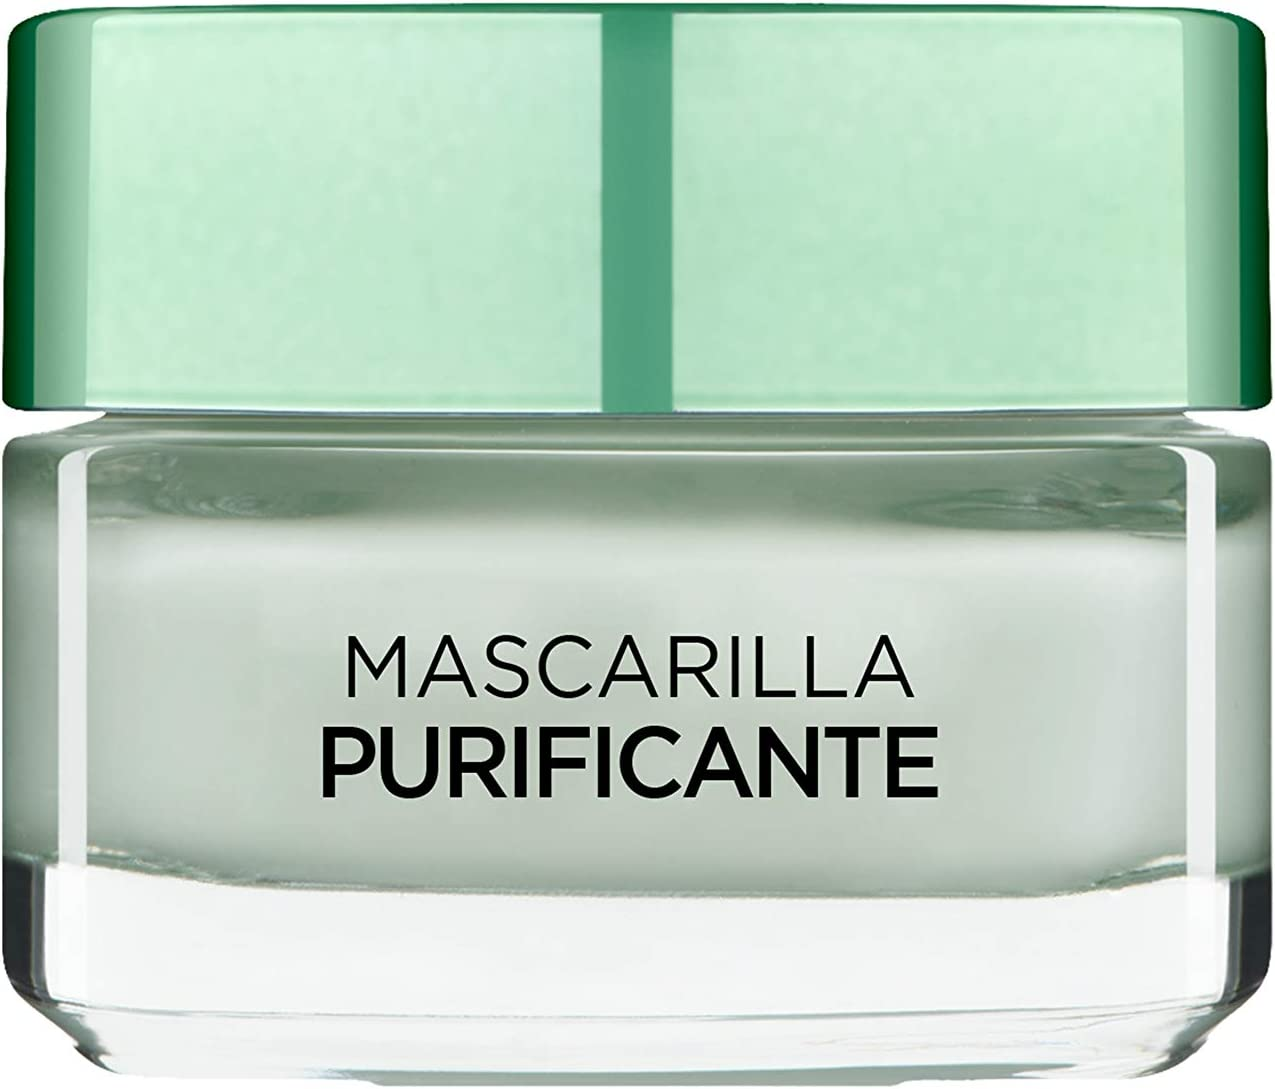 L'Oreal Paris Dermo Expertise Mascarilla Purificante, Arcillas Puras, Purifica y Matifica - 50 ml